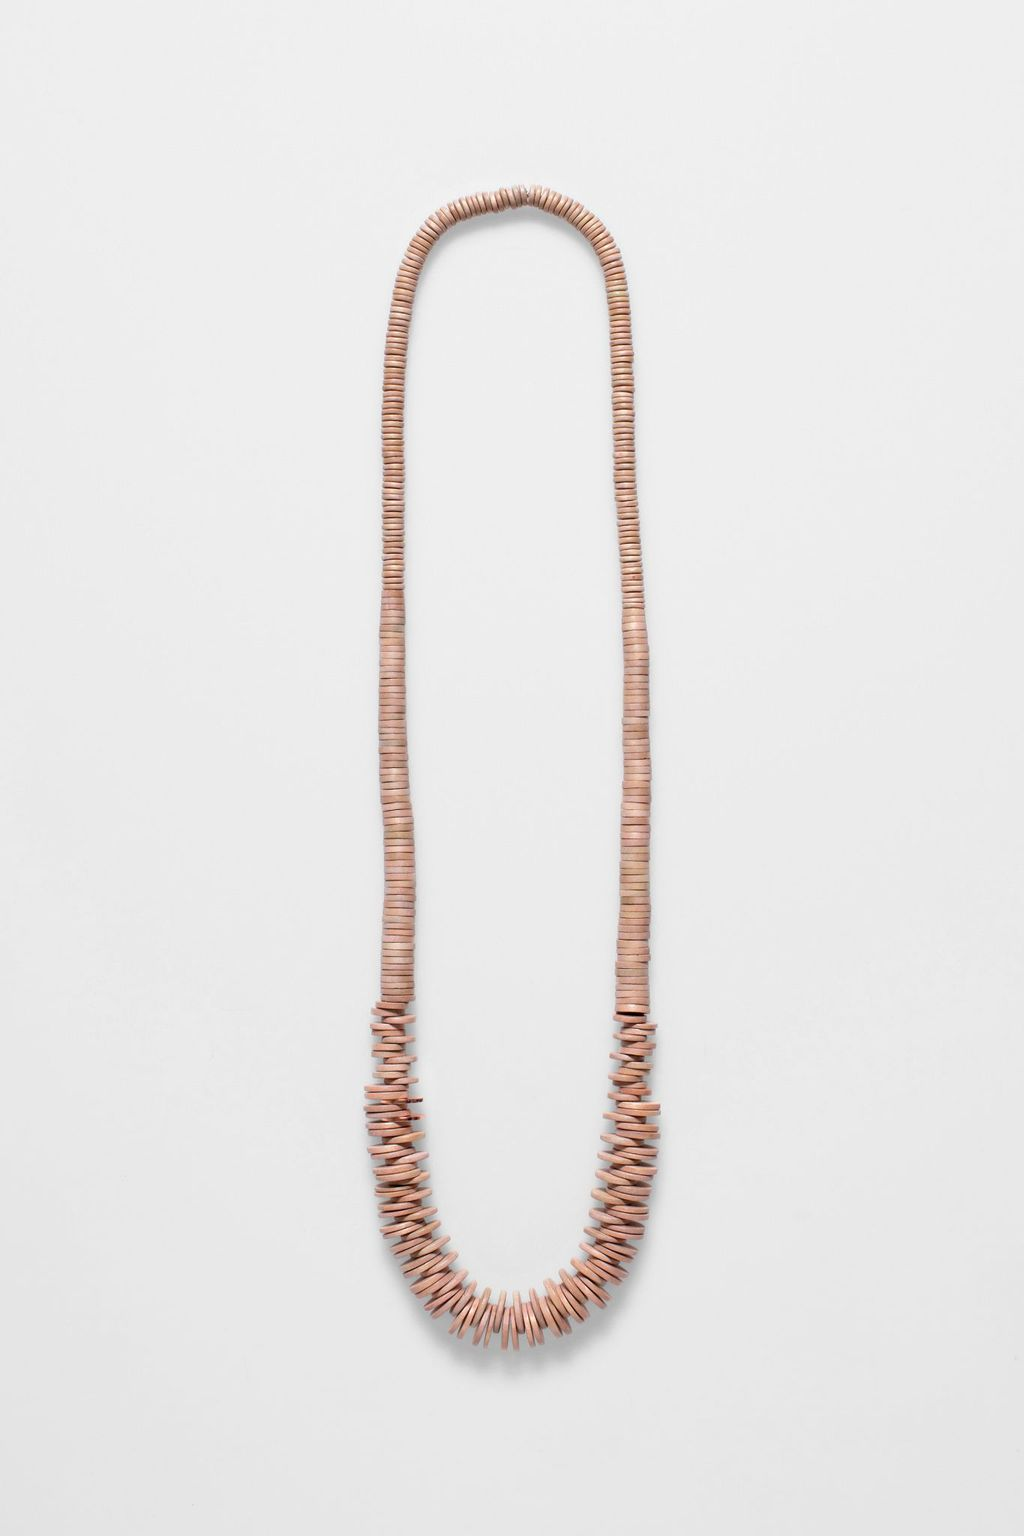 Paz Necklace - Natural